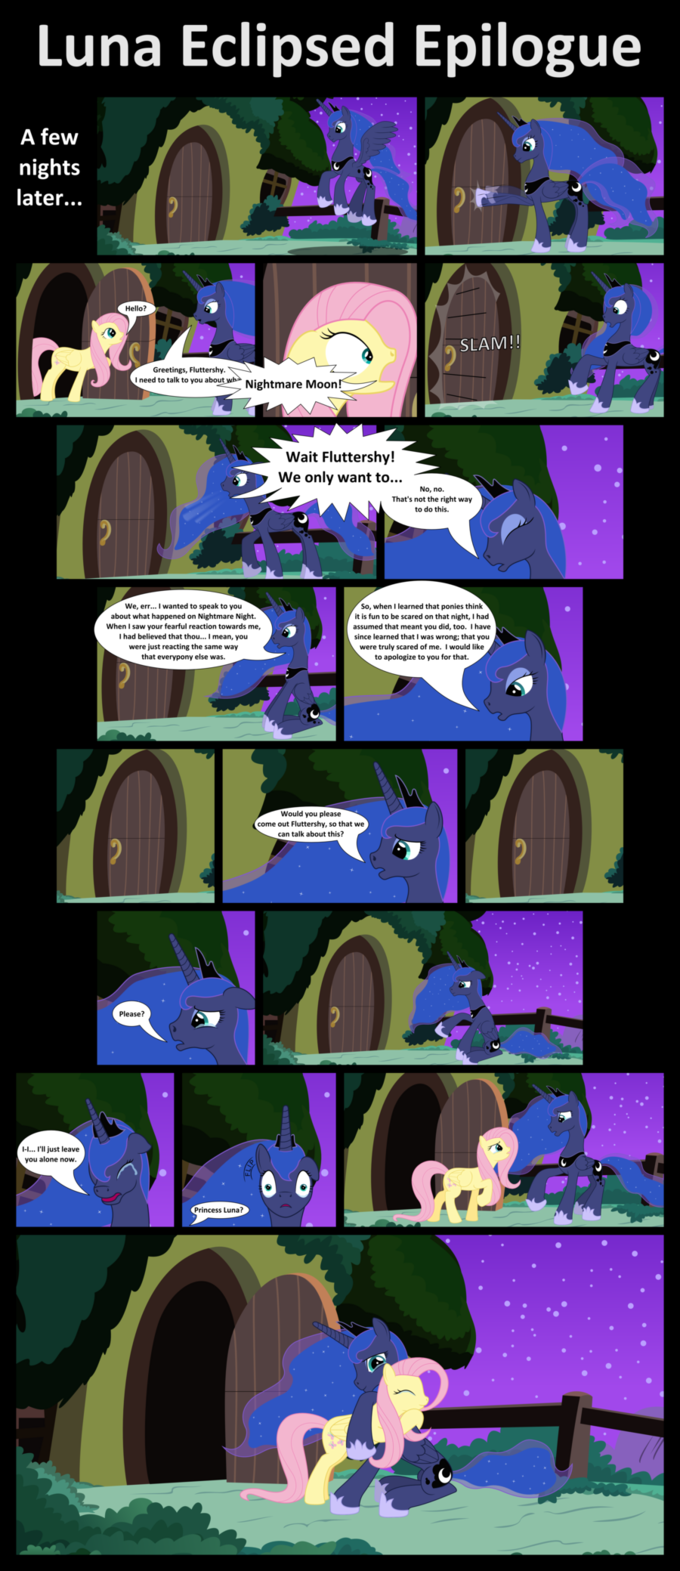 Luna Eclipsed Epilogue